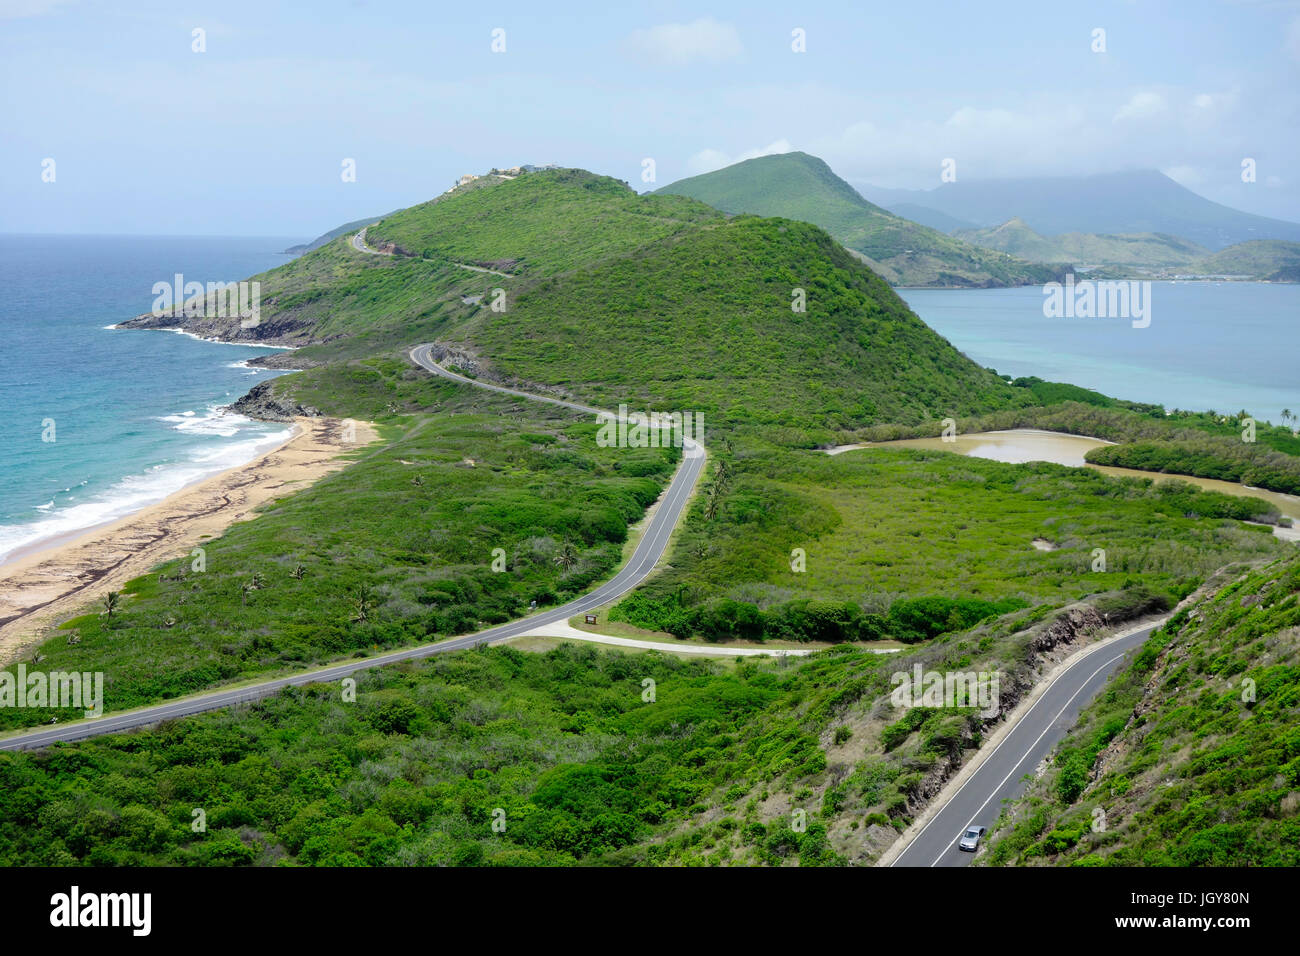 Caribbean aerial from Turtle Bay on St. Kitts, St. Kitts and Nevis, Leeward Islands, West Indies, Caribbean. - Stock Image